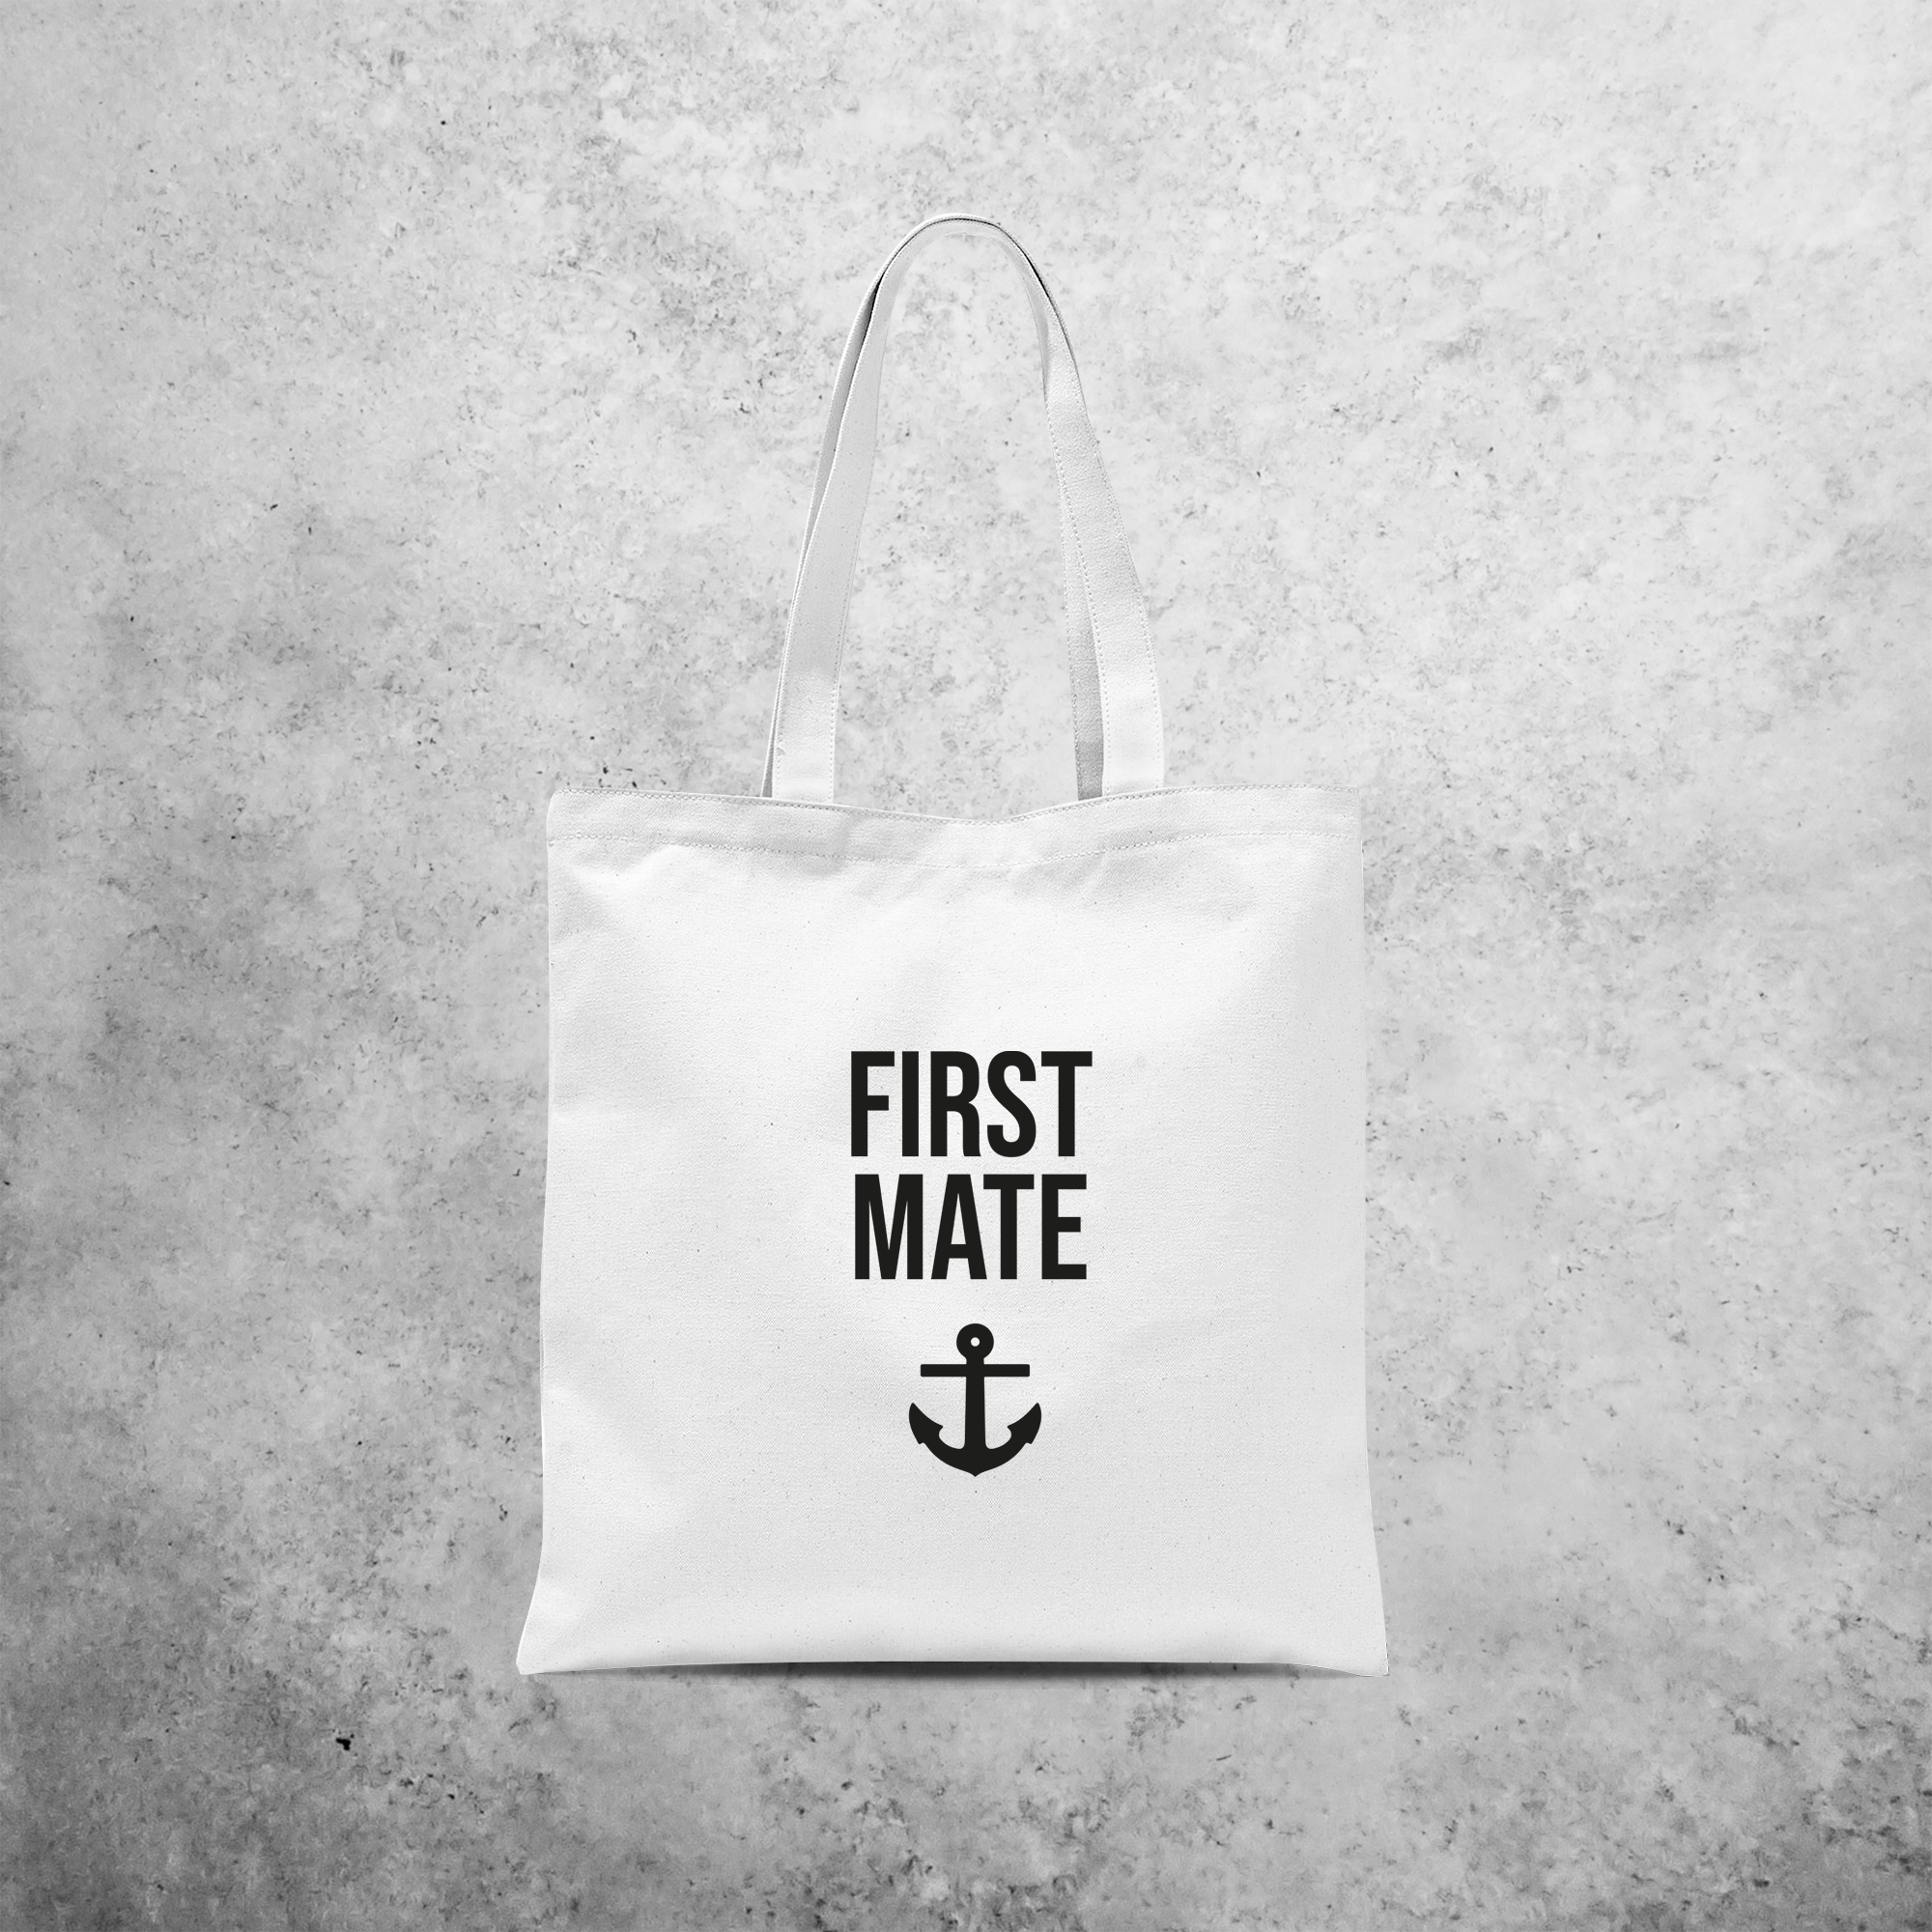 'First mate' tote bag